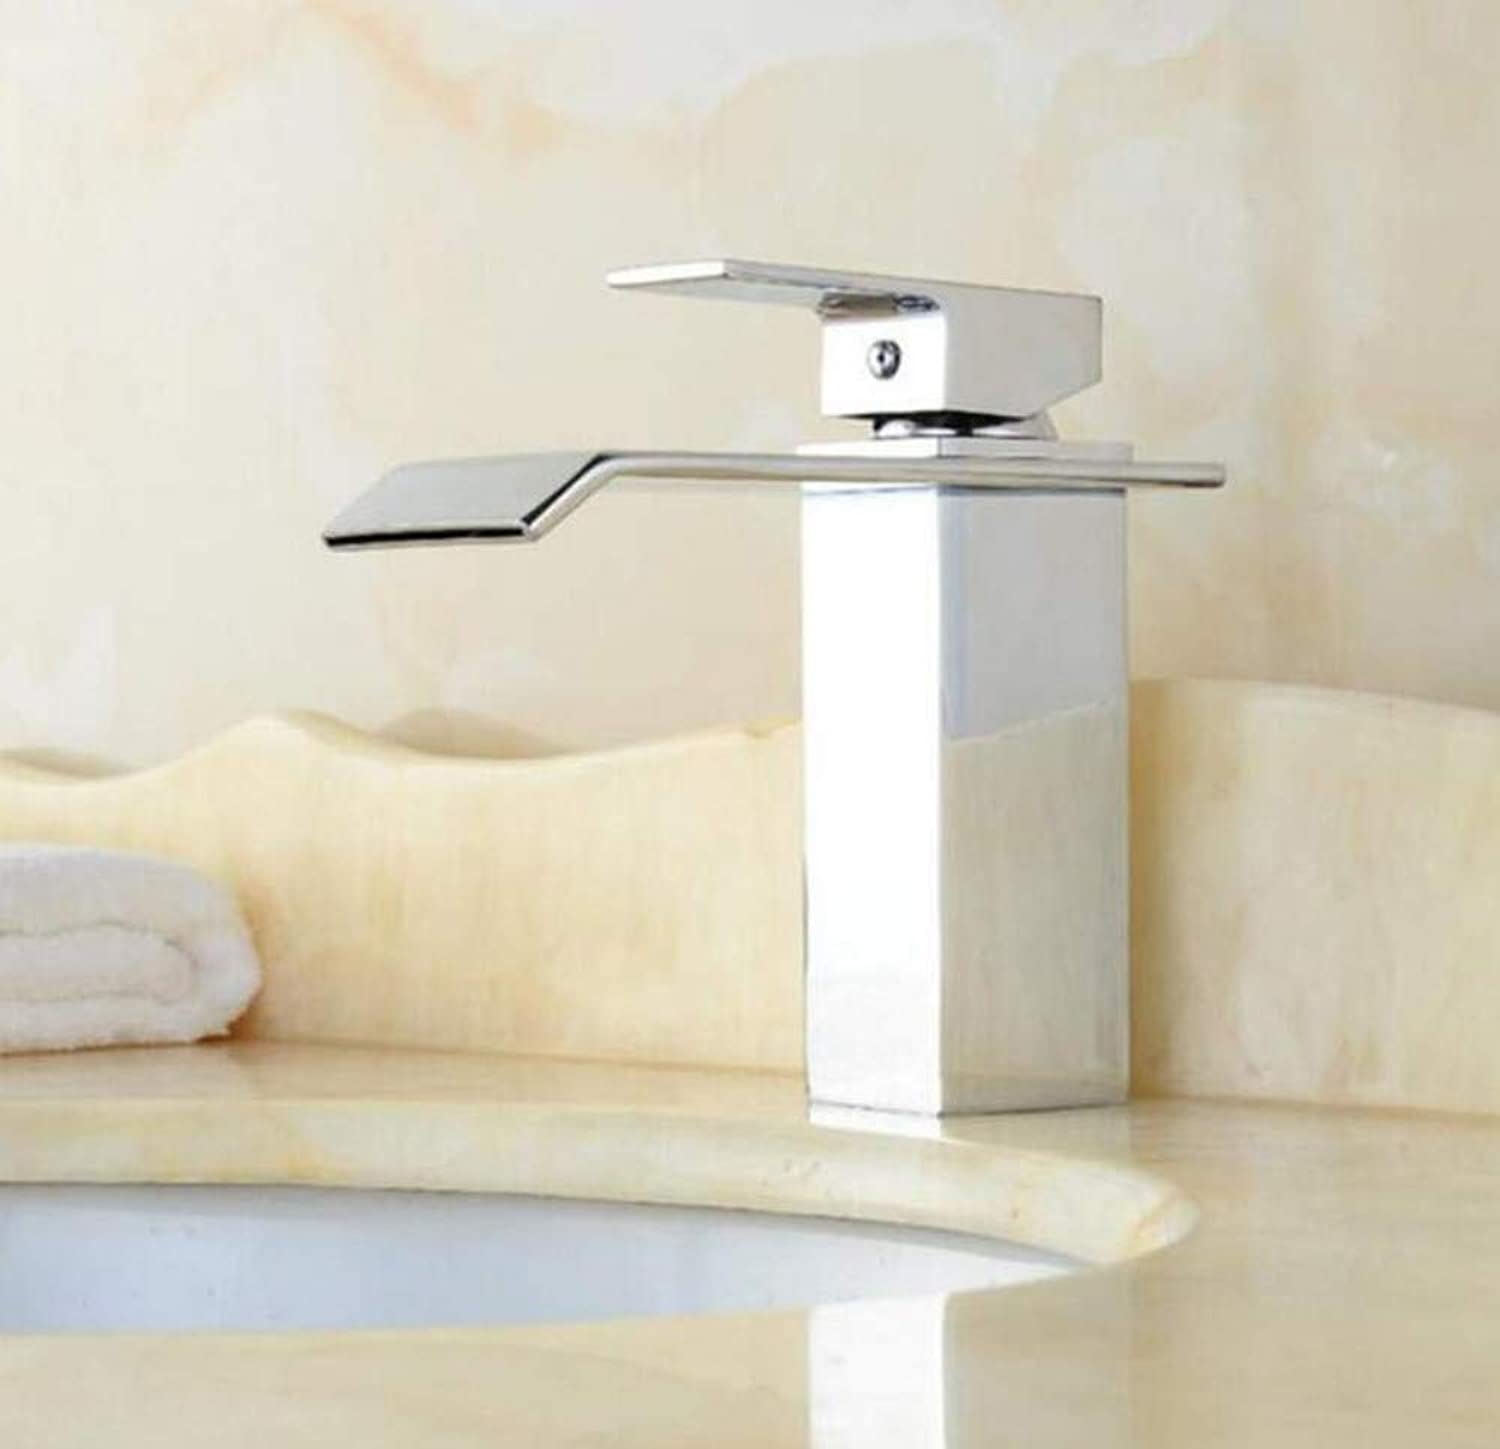 Brass Wall Faucet Chrome Brass Faucetfaucet Vanity Vessel Sinks Mixer Tap Cold and Hot Water Tap The Basin Faucet